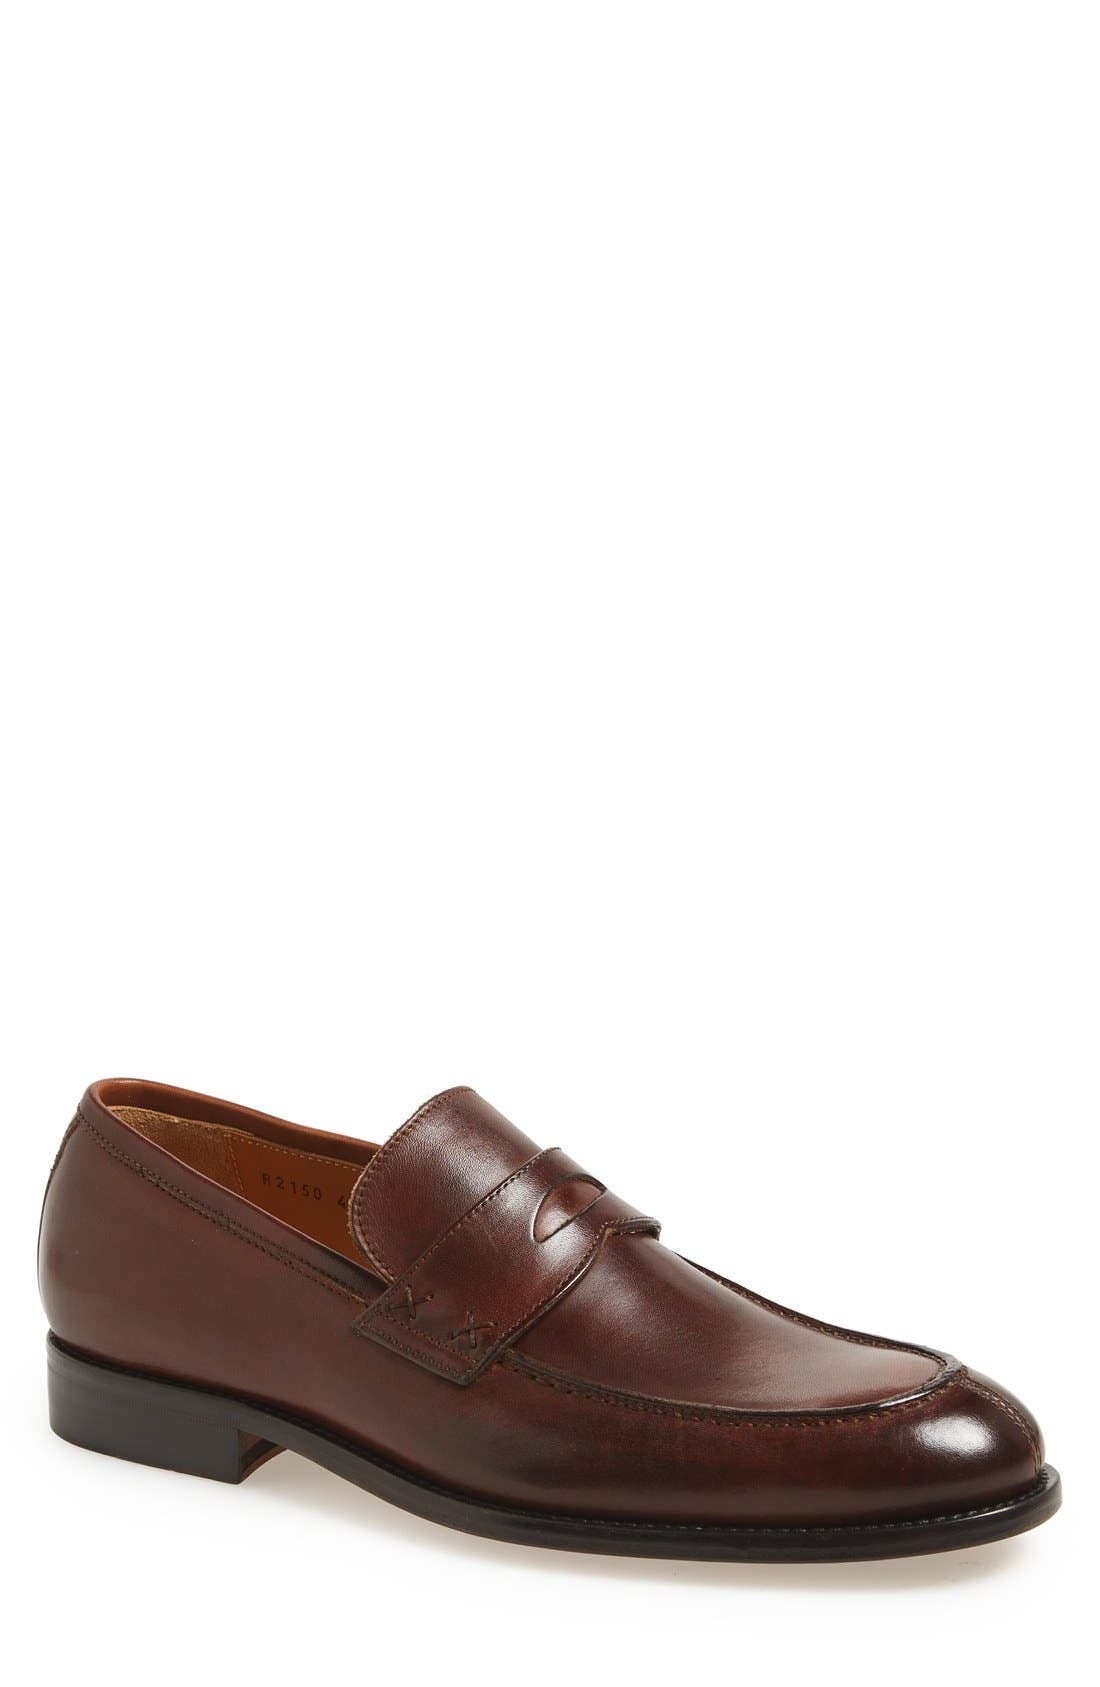 Main Image - Dogen 'Vitello Crust' Penny Loafer (Men)